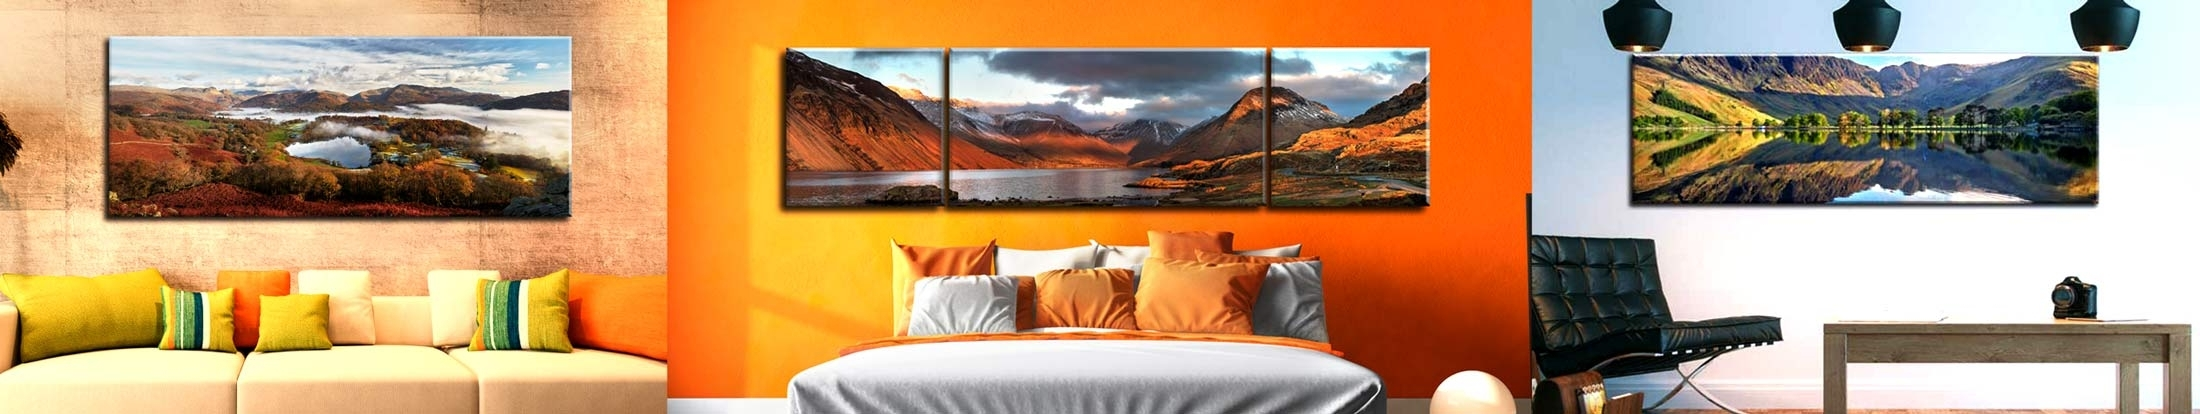 Lake District Canvas Wall Art Within Well Known Lake District Canvas Prints – Single And Multi Panel Canvases (View 8 of 15)